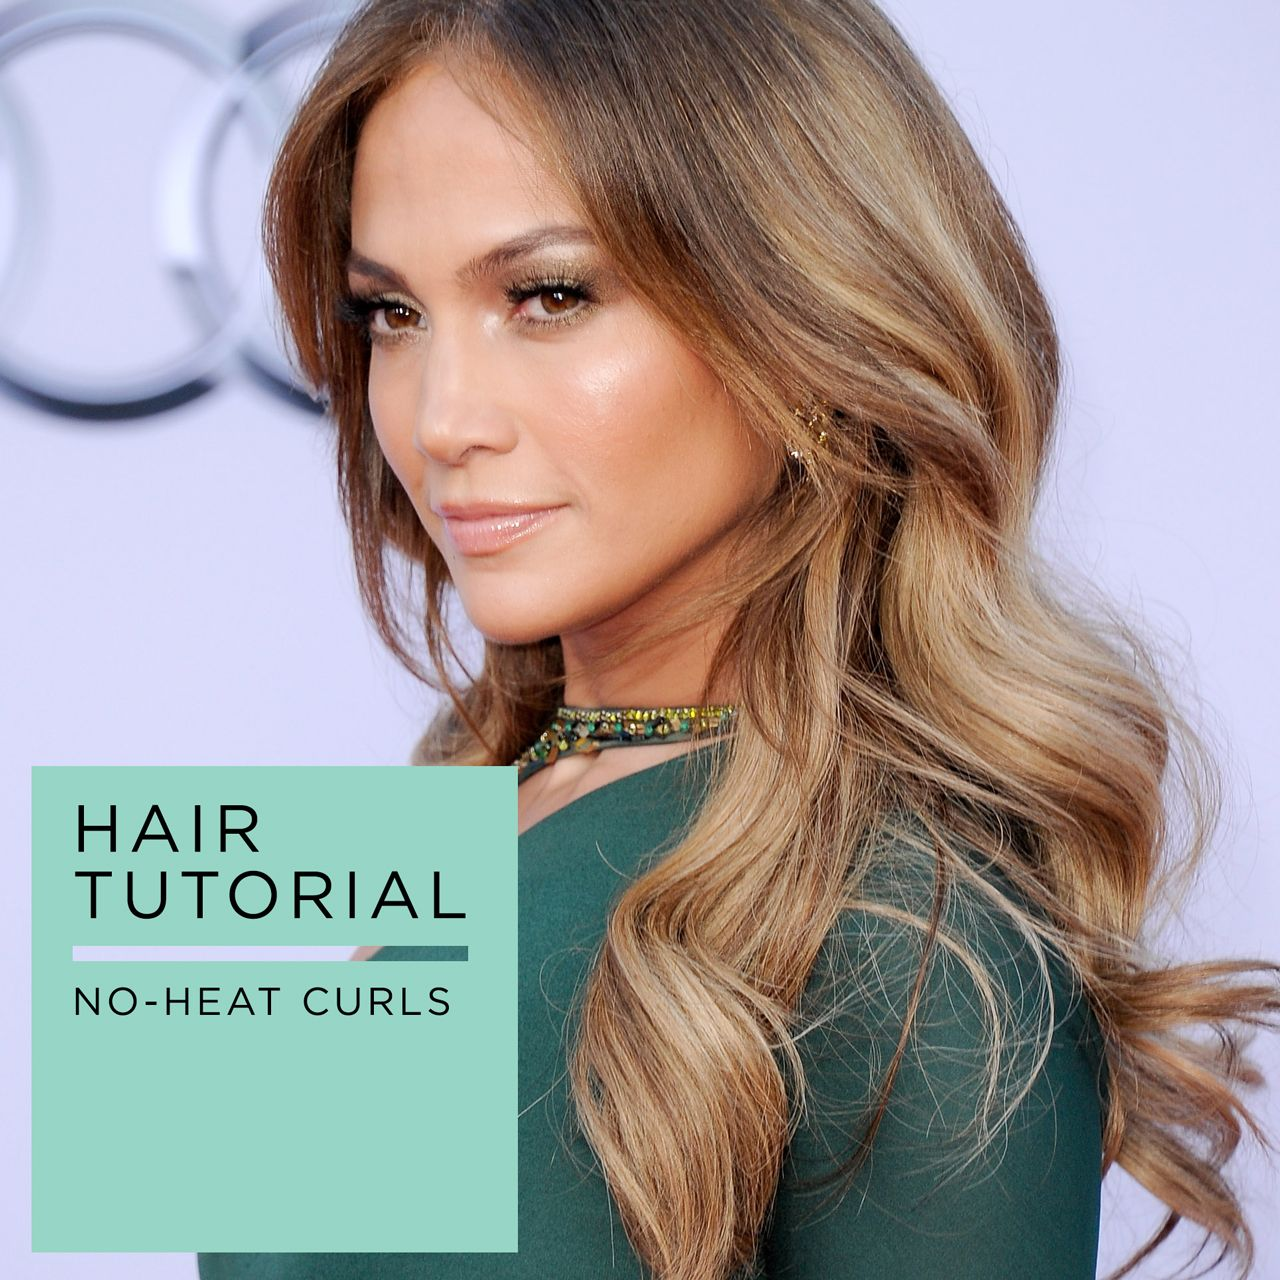 Hair Without Heat, Curly Hair